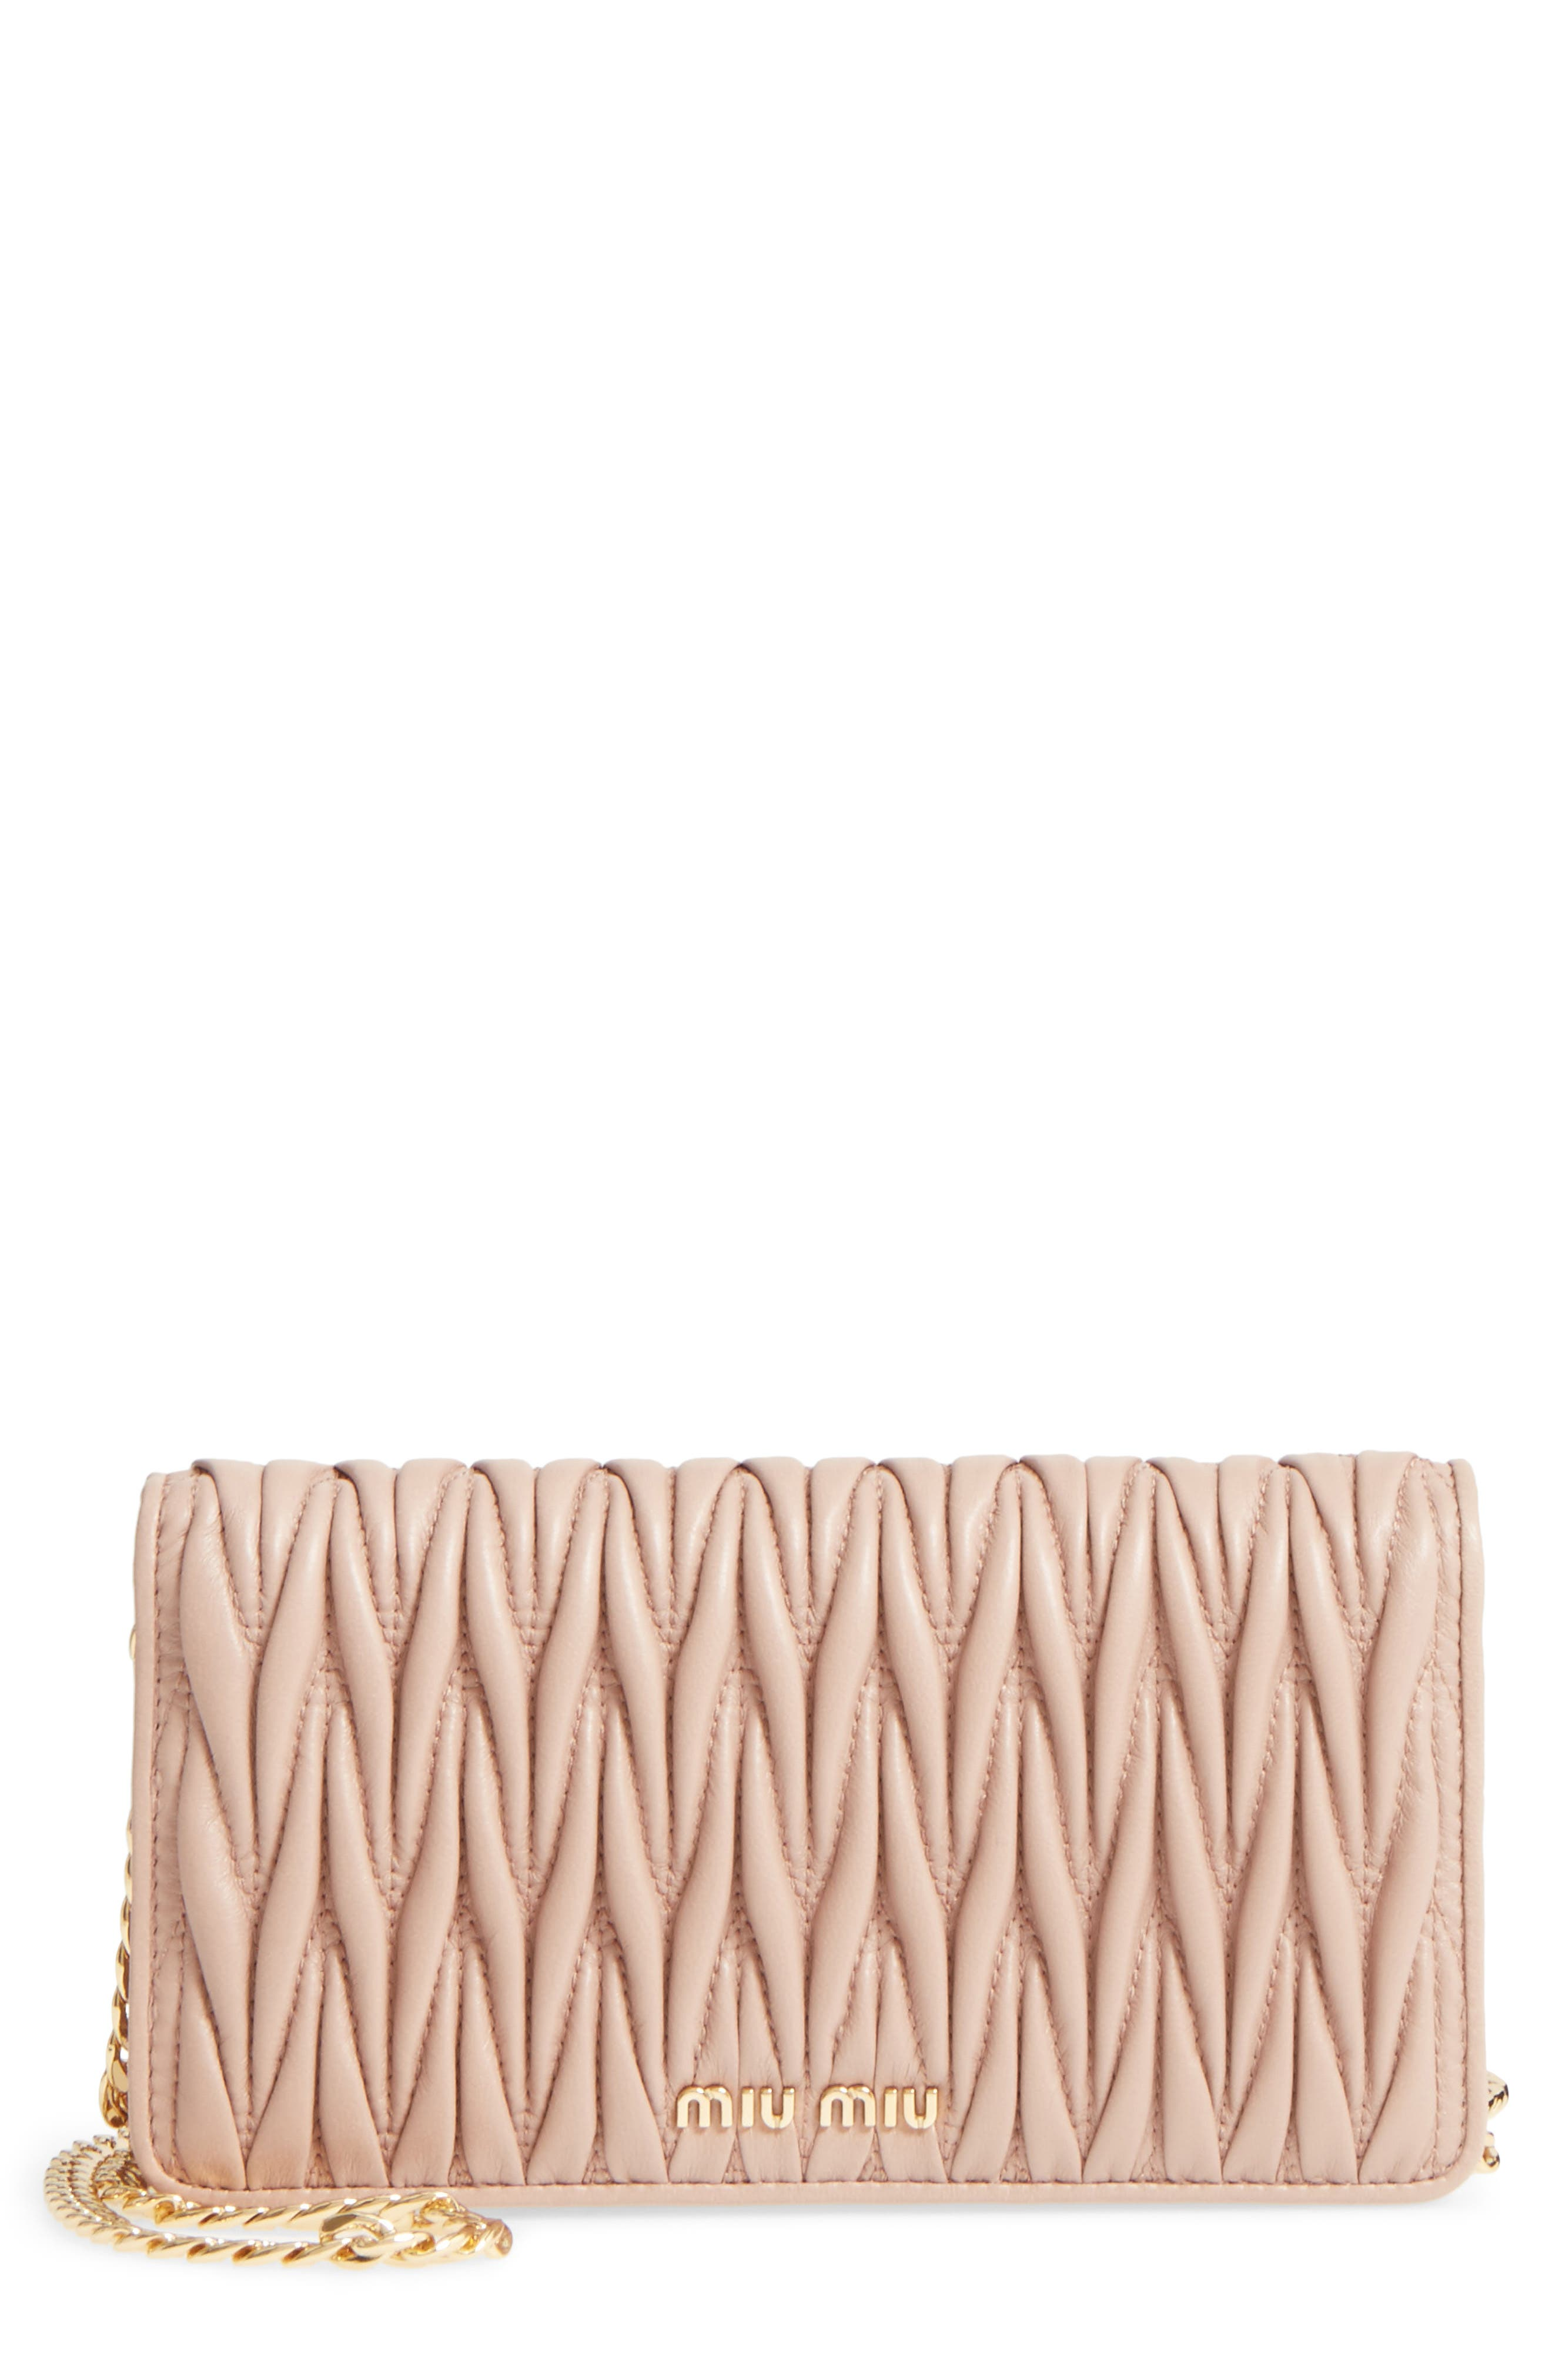 wristlets wallets card cases for women nordstrom rh shop nordstrom com